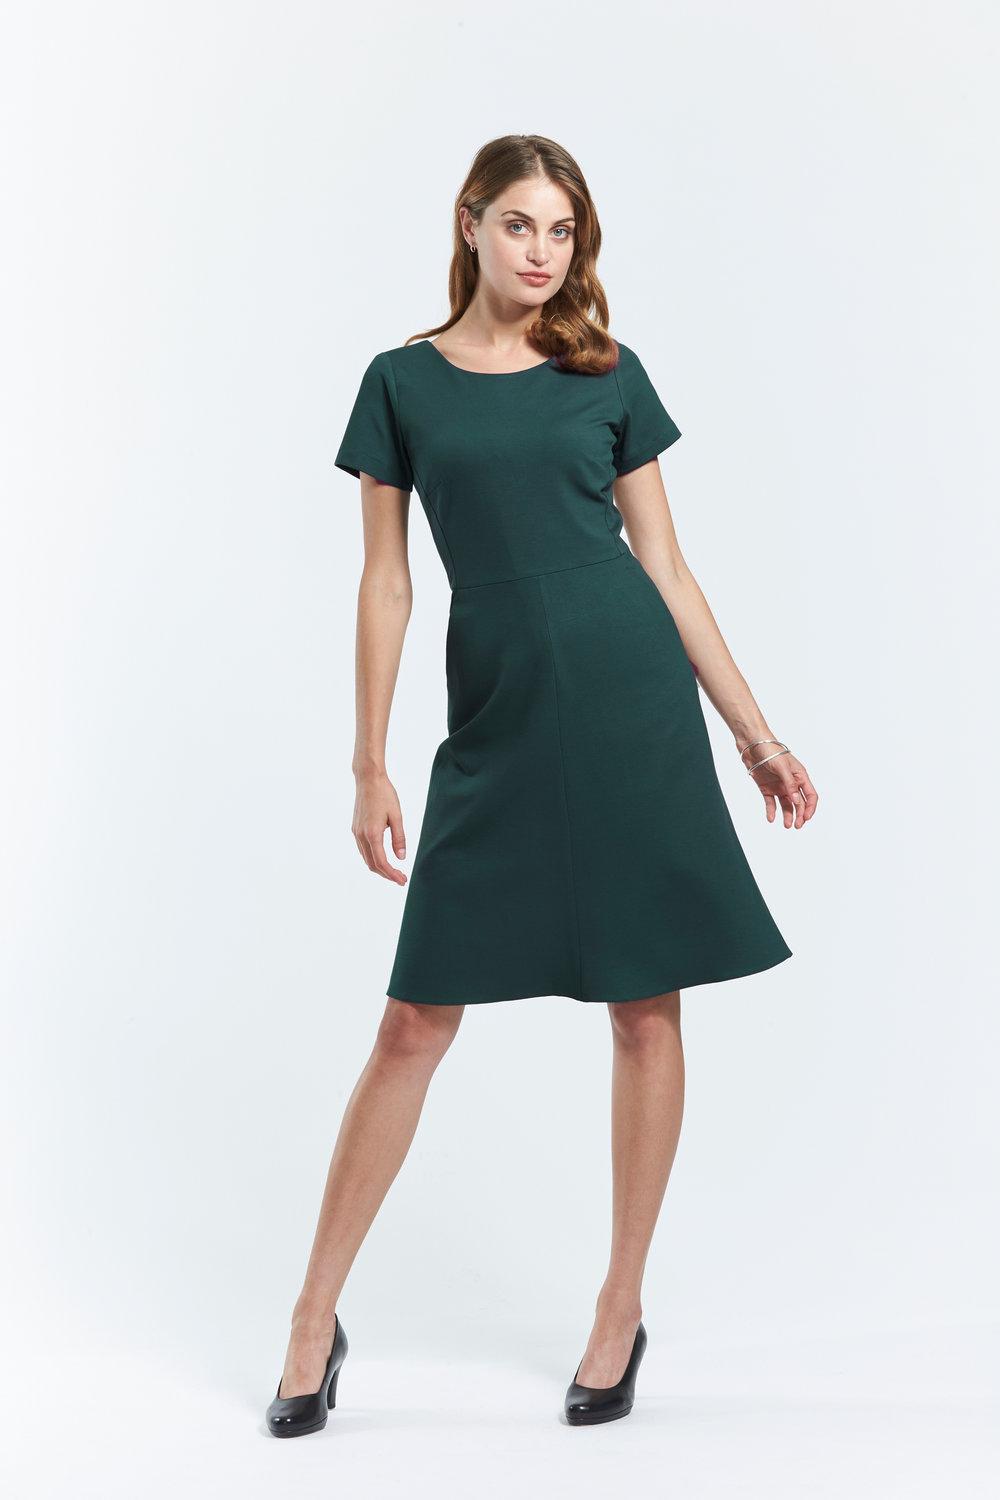 health care age care uniform ponte dress